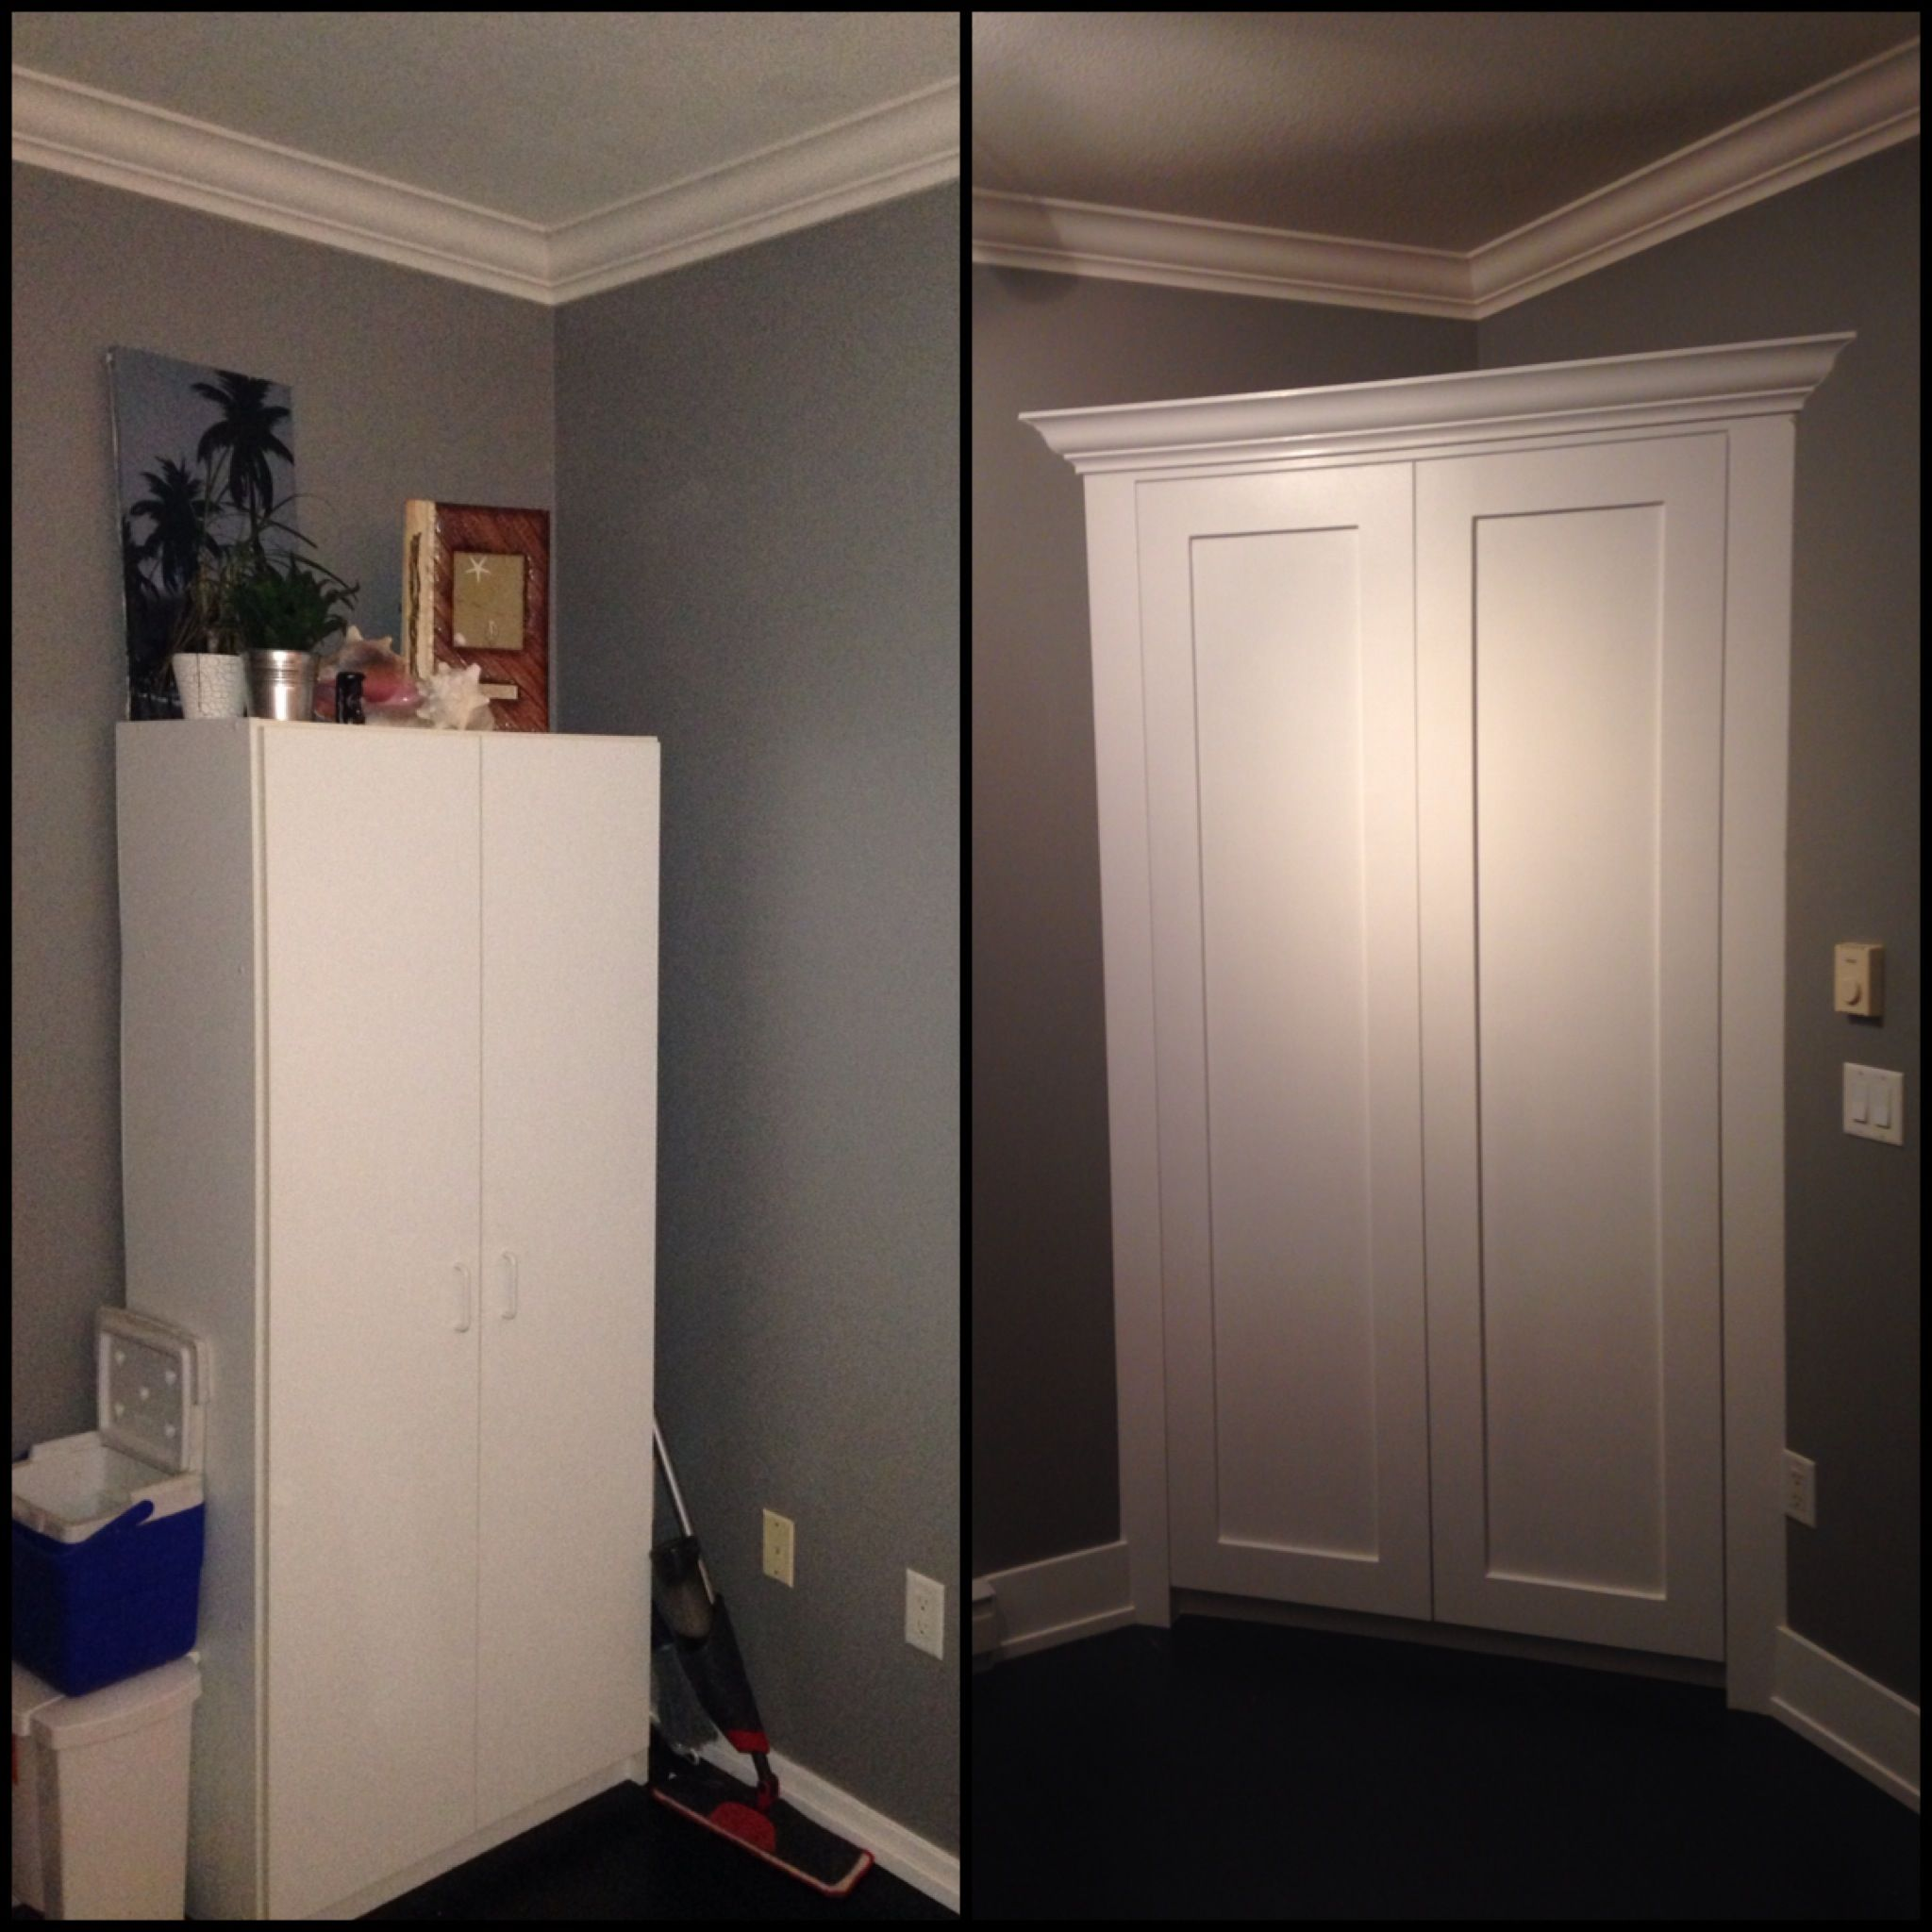 No Kitchen Cabinet Ideas: Before/After On A Corner Unit Pantry I Made.